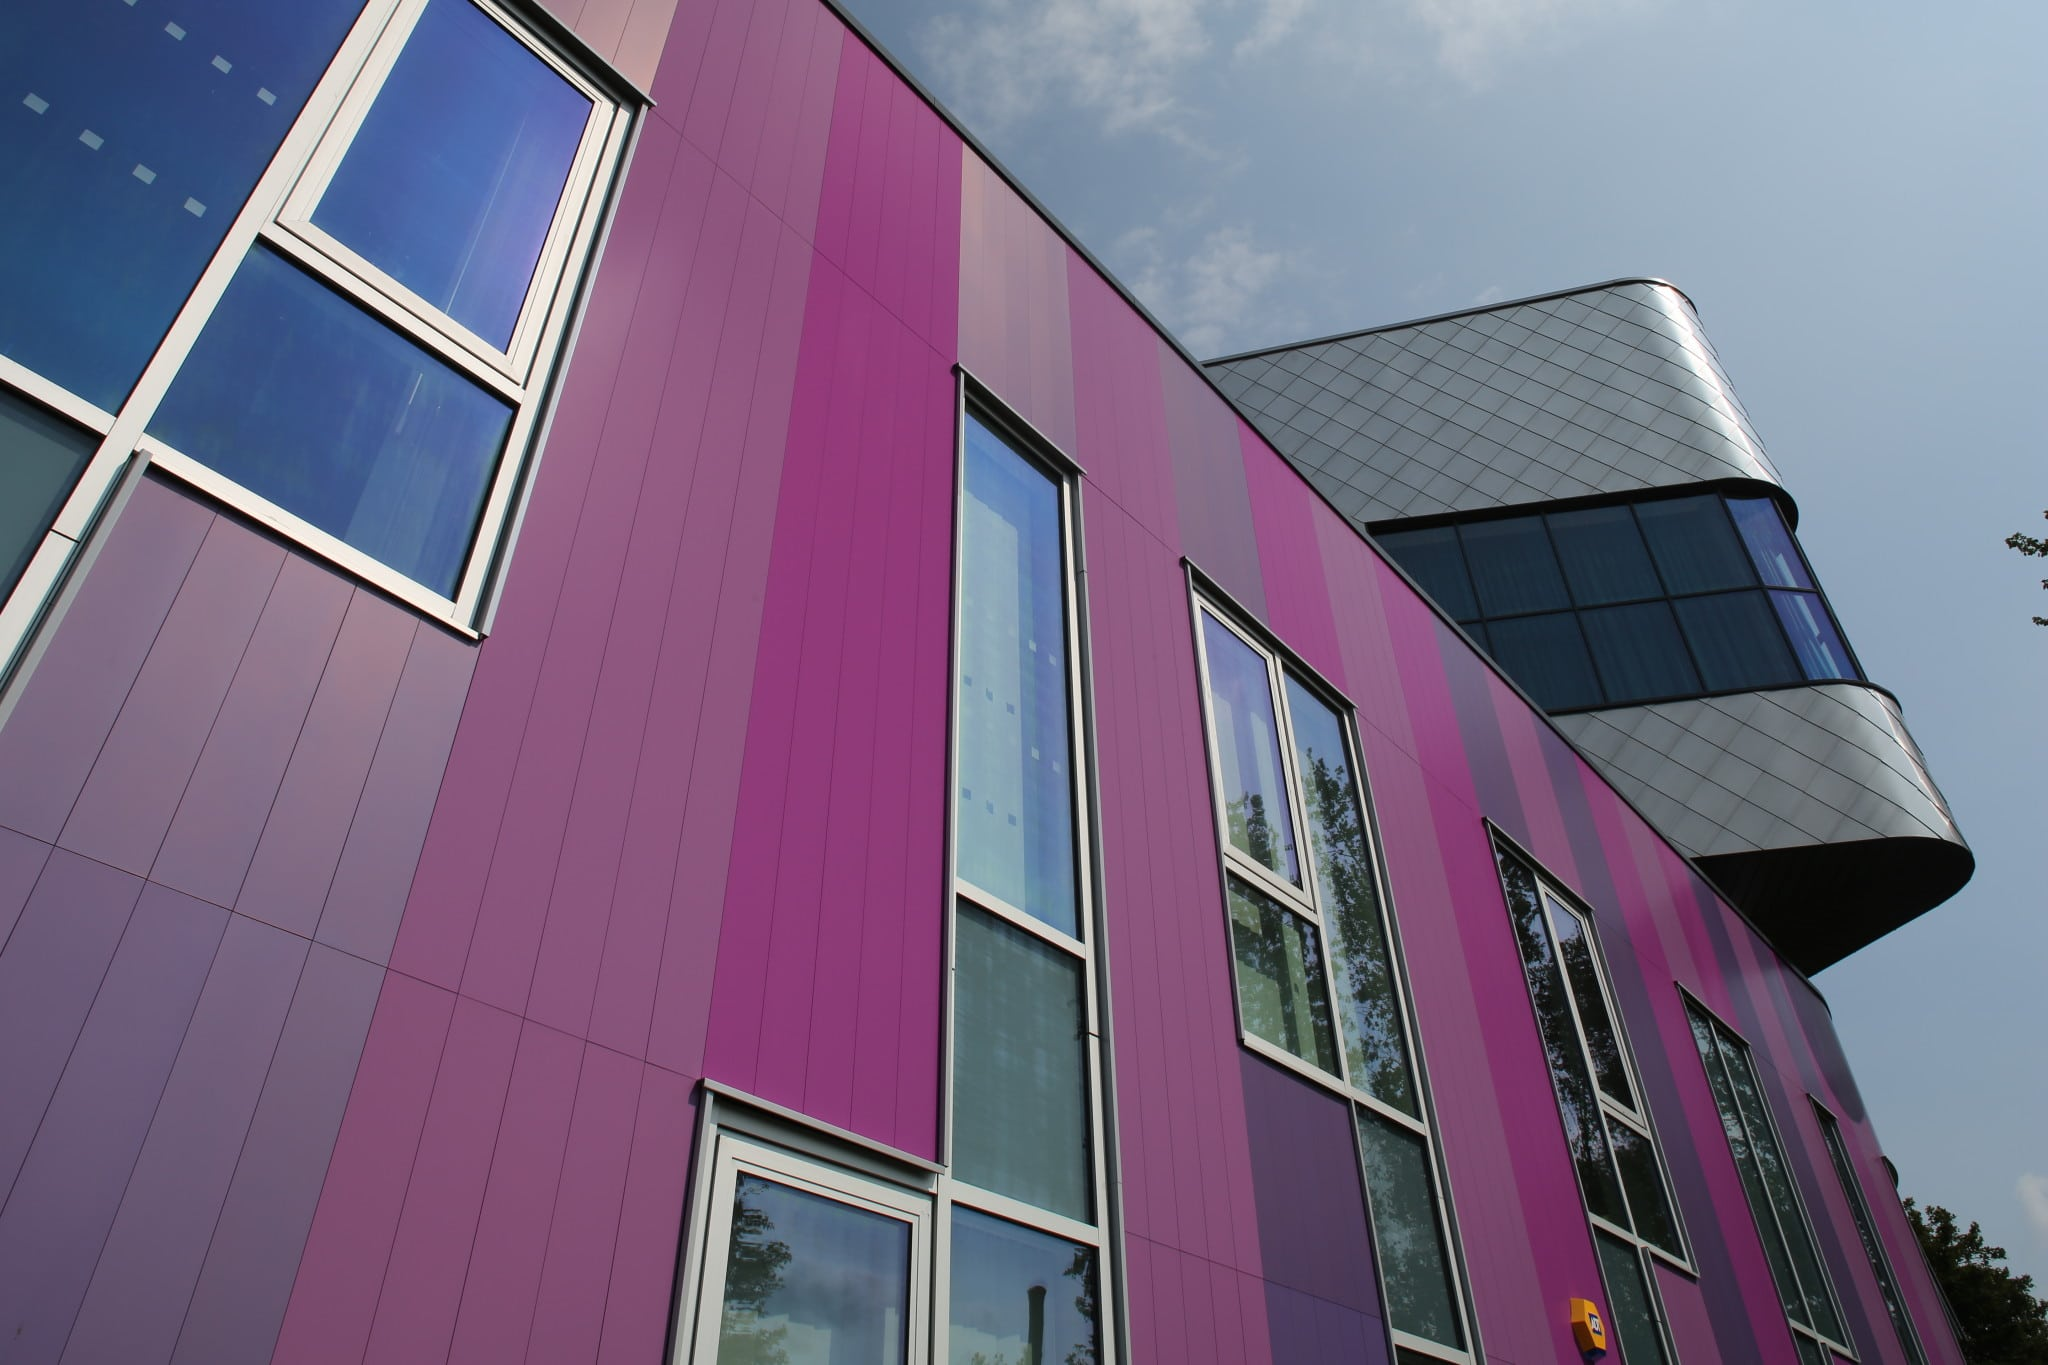 Aluminium Cladding Without Silicon : Top benefits of specifying rainscreen cladding sotech